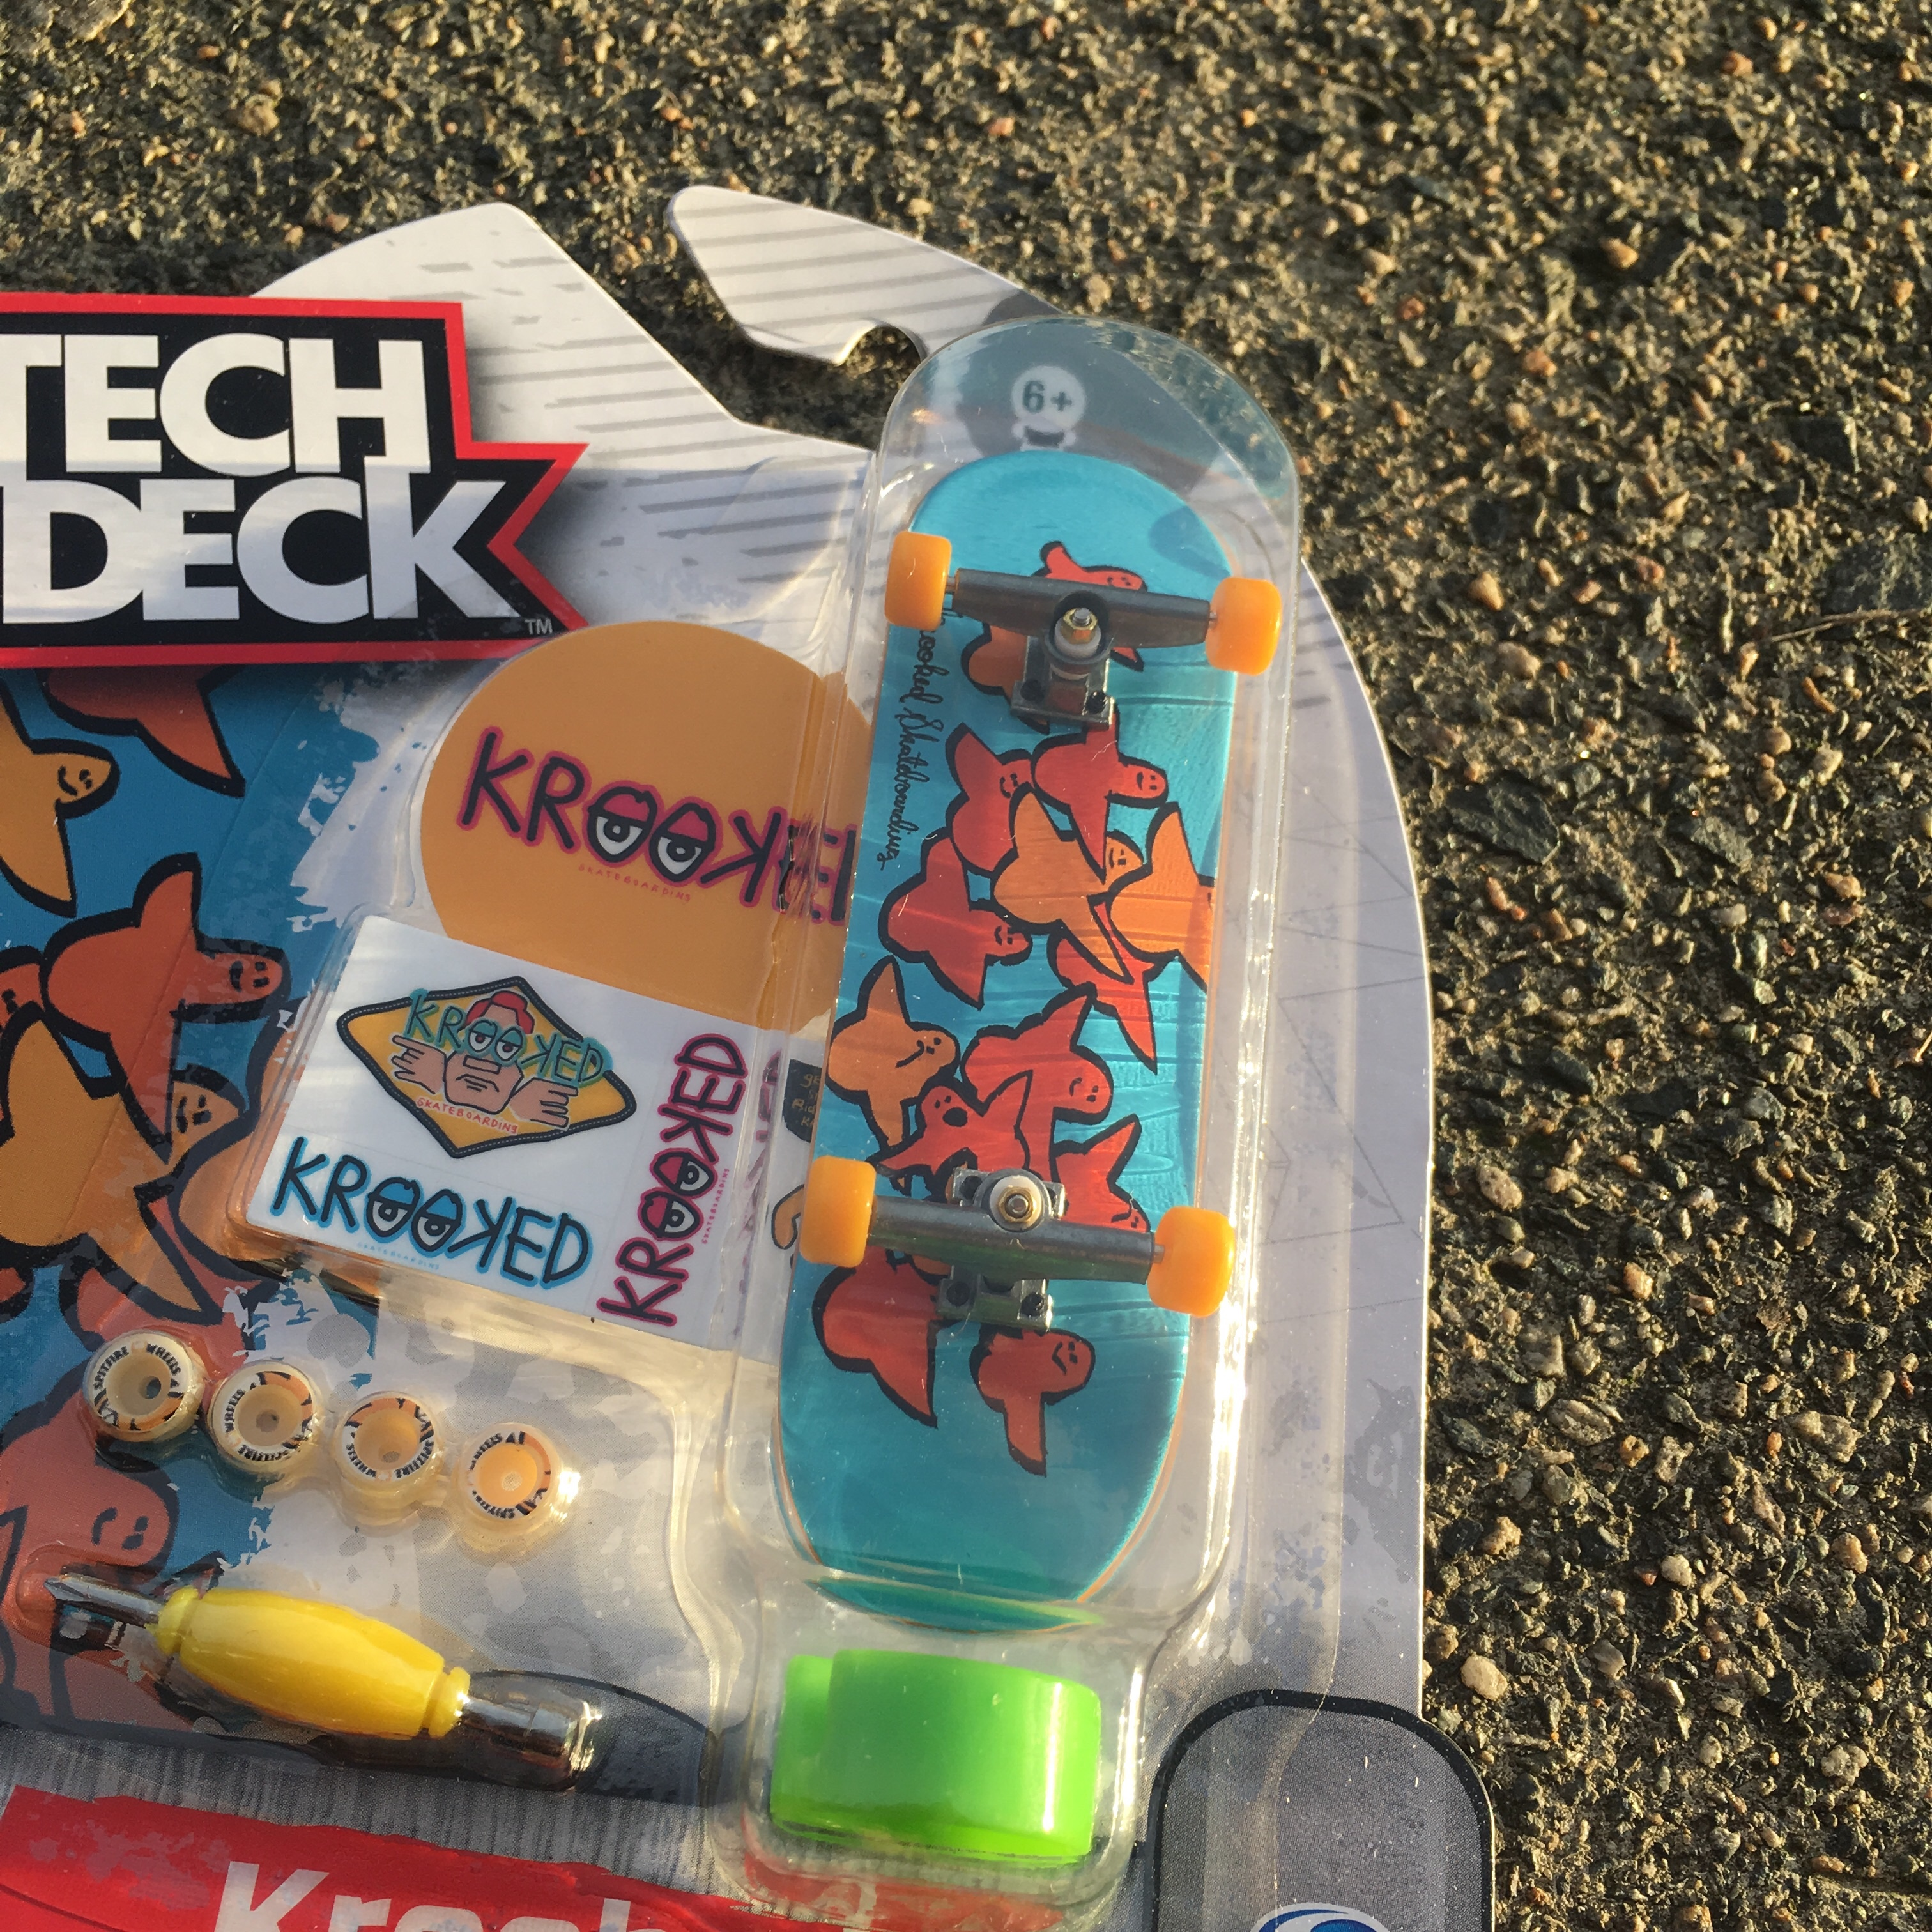 Tech Deck Series 8 Finger Board  Krooked Gonz    - Depop